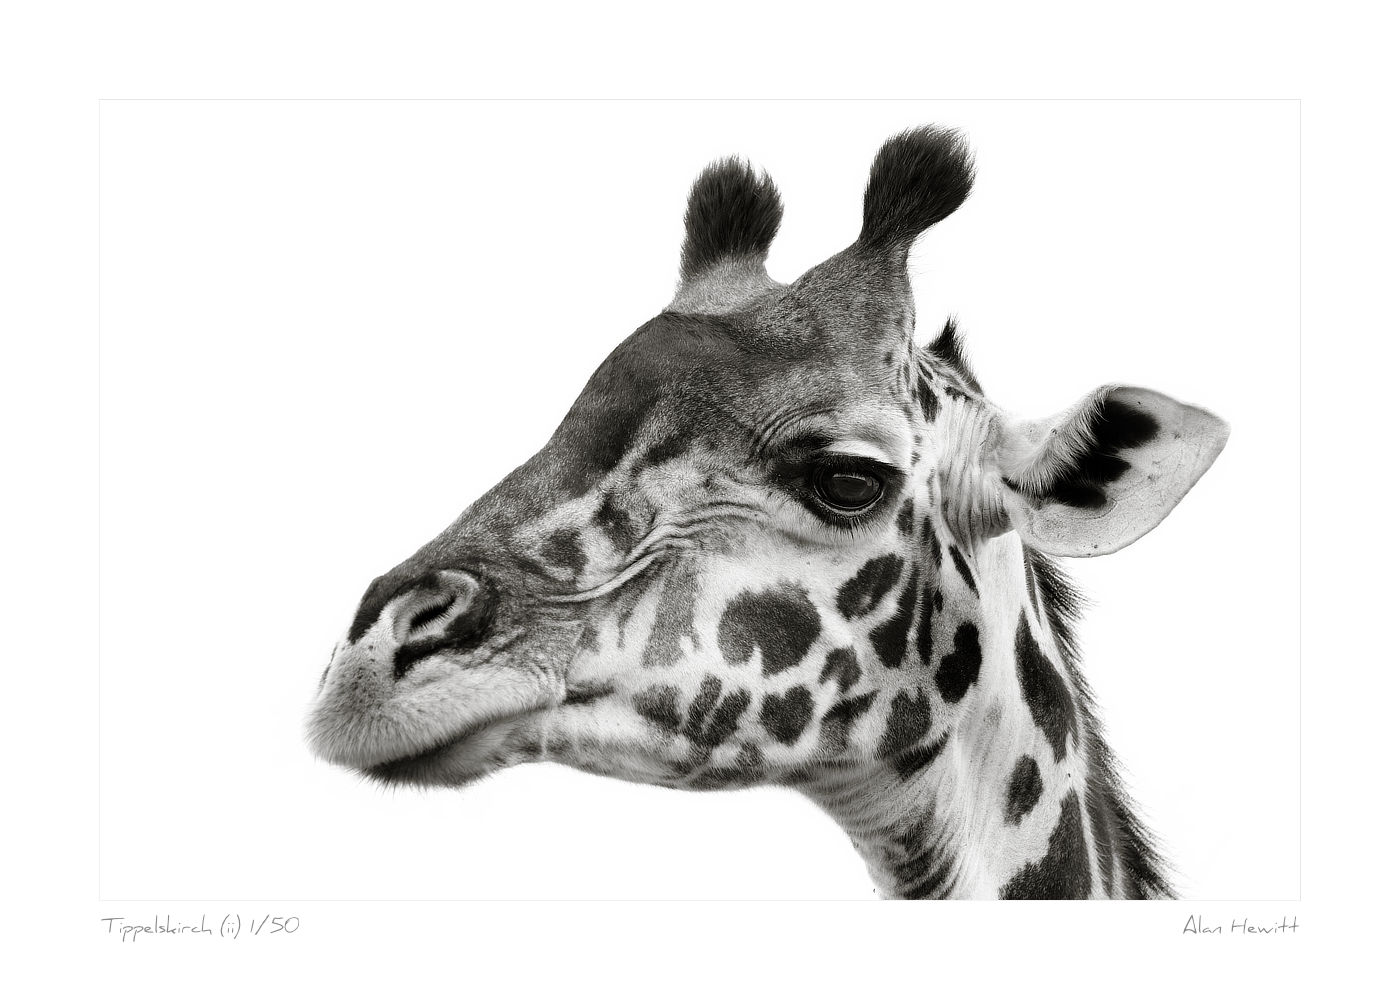 Wildlife Print Tippelskirch (ii) Giraffe Alan Hewitt Photography